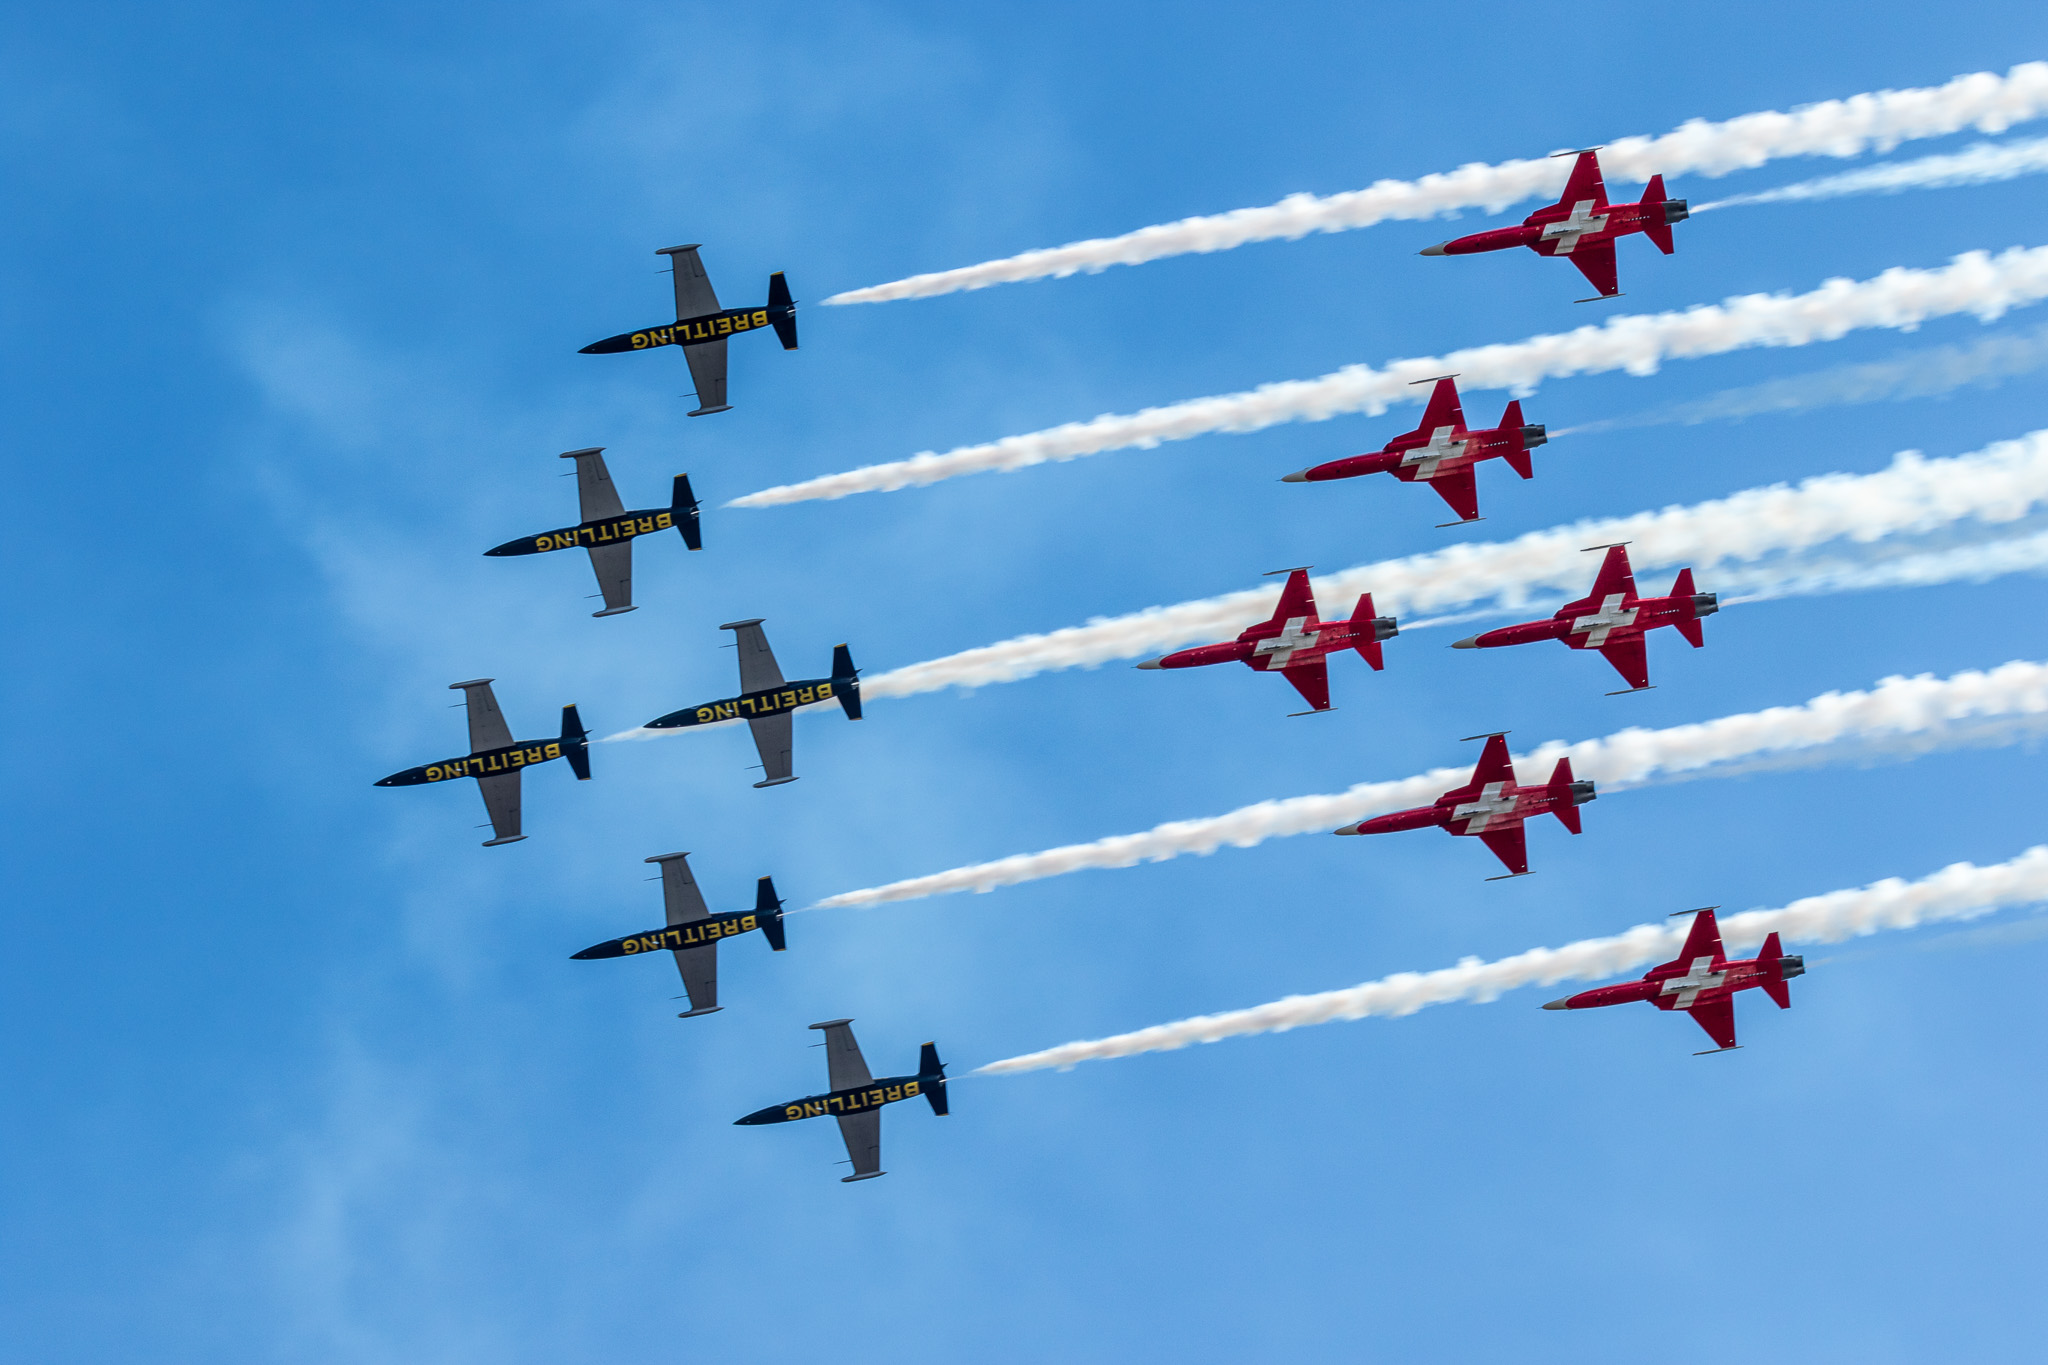 Breitling Jet Team with Patrouille Suisse